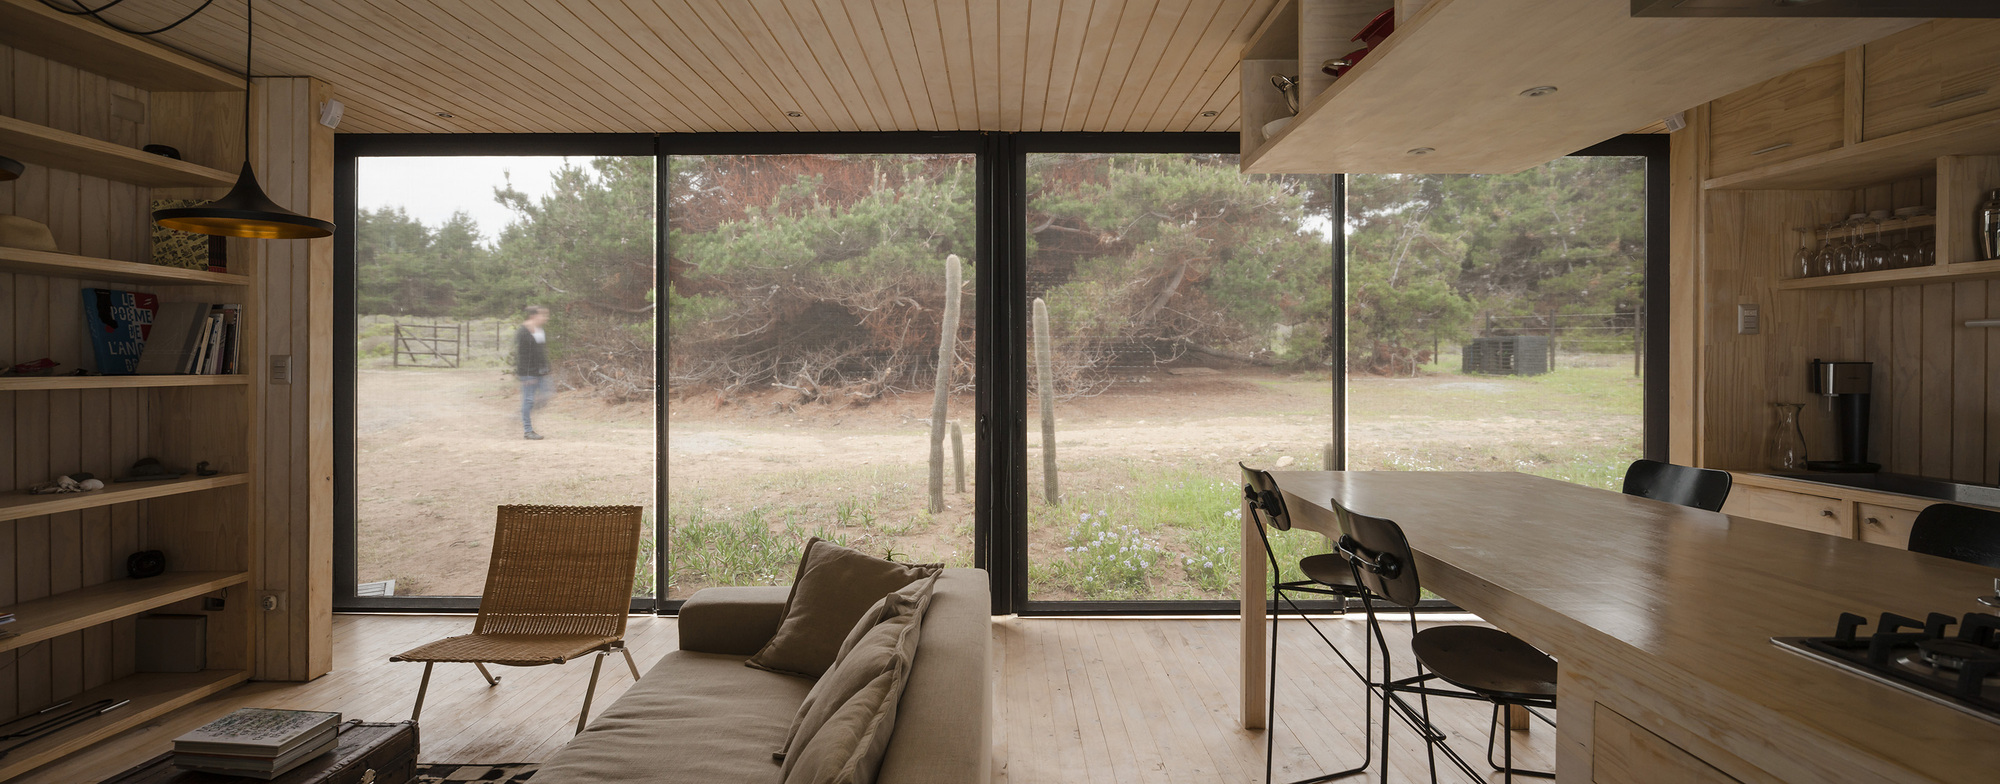 Gallery Of Remote House Felipe Assadi 7